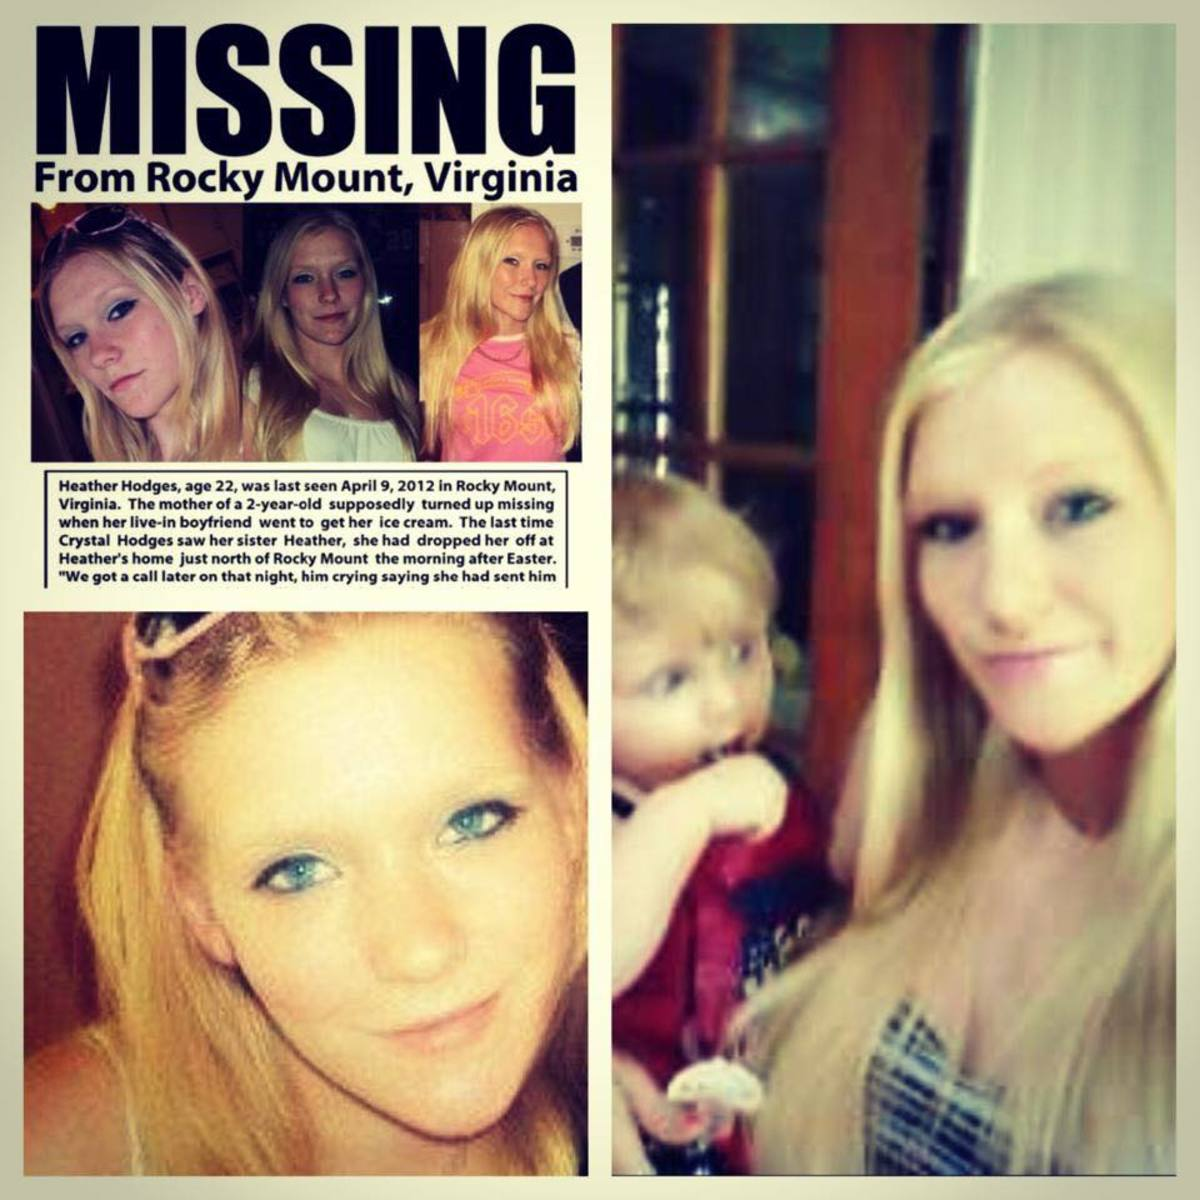 Heather Hodges disappeared in 2012.